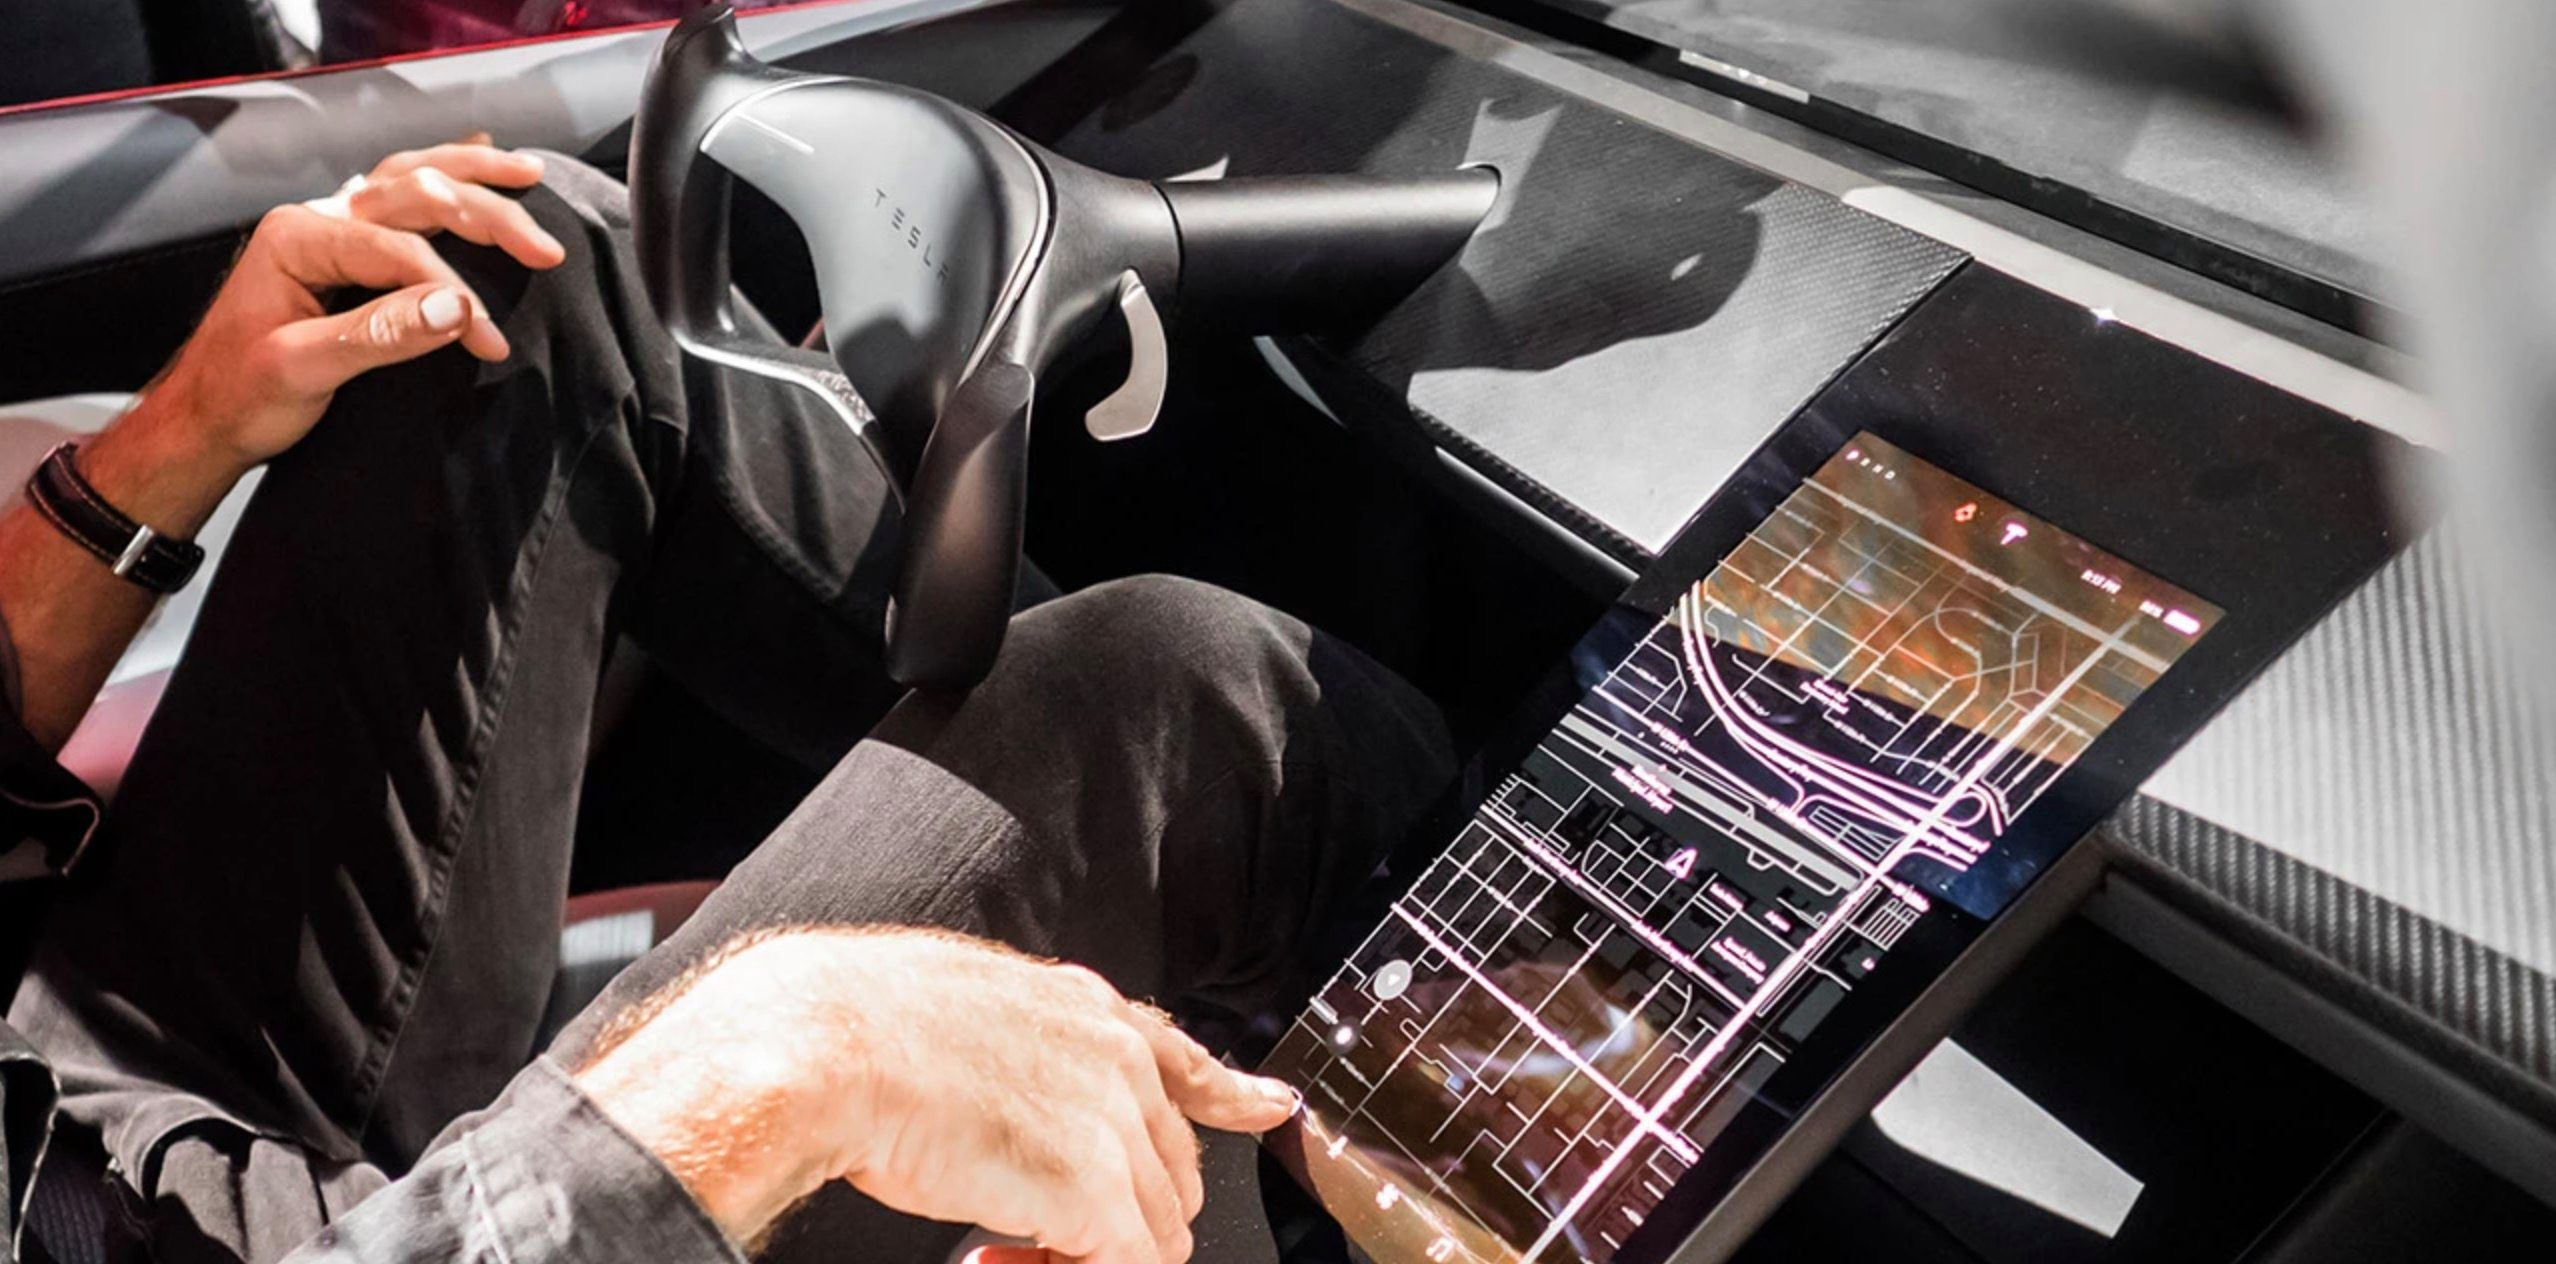 Tesla V11 Software Update Elon Musk Teases Fire Update With New Surprise Features And More Tesla S Elon Musk Software Update